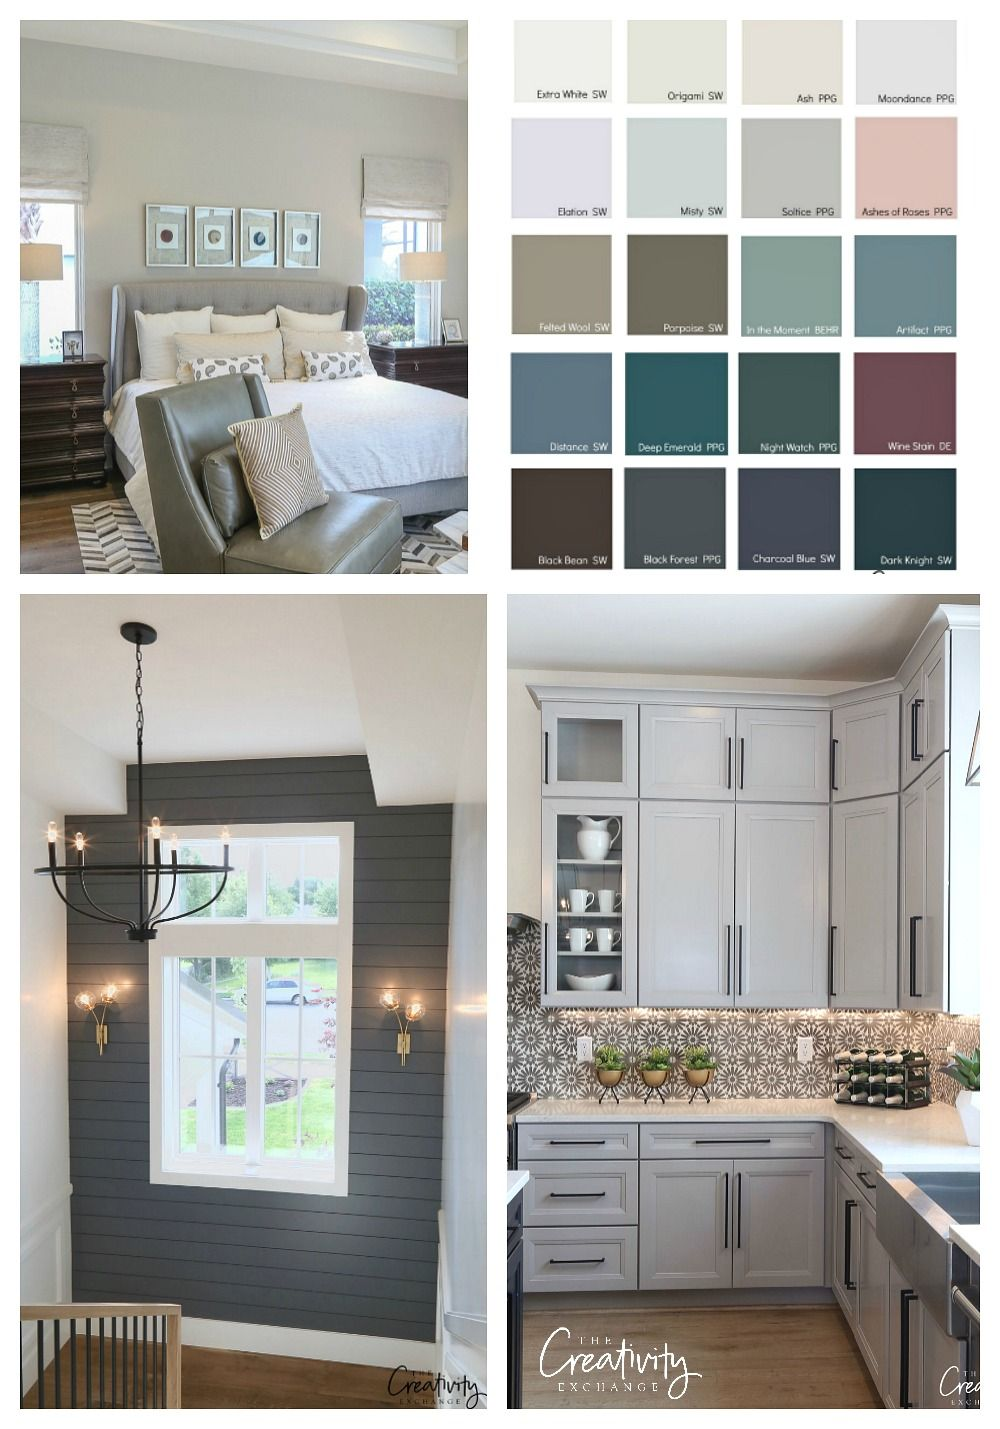 2019 Paint Color Trends And Forecasts Trending Paint Colors